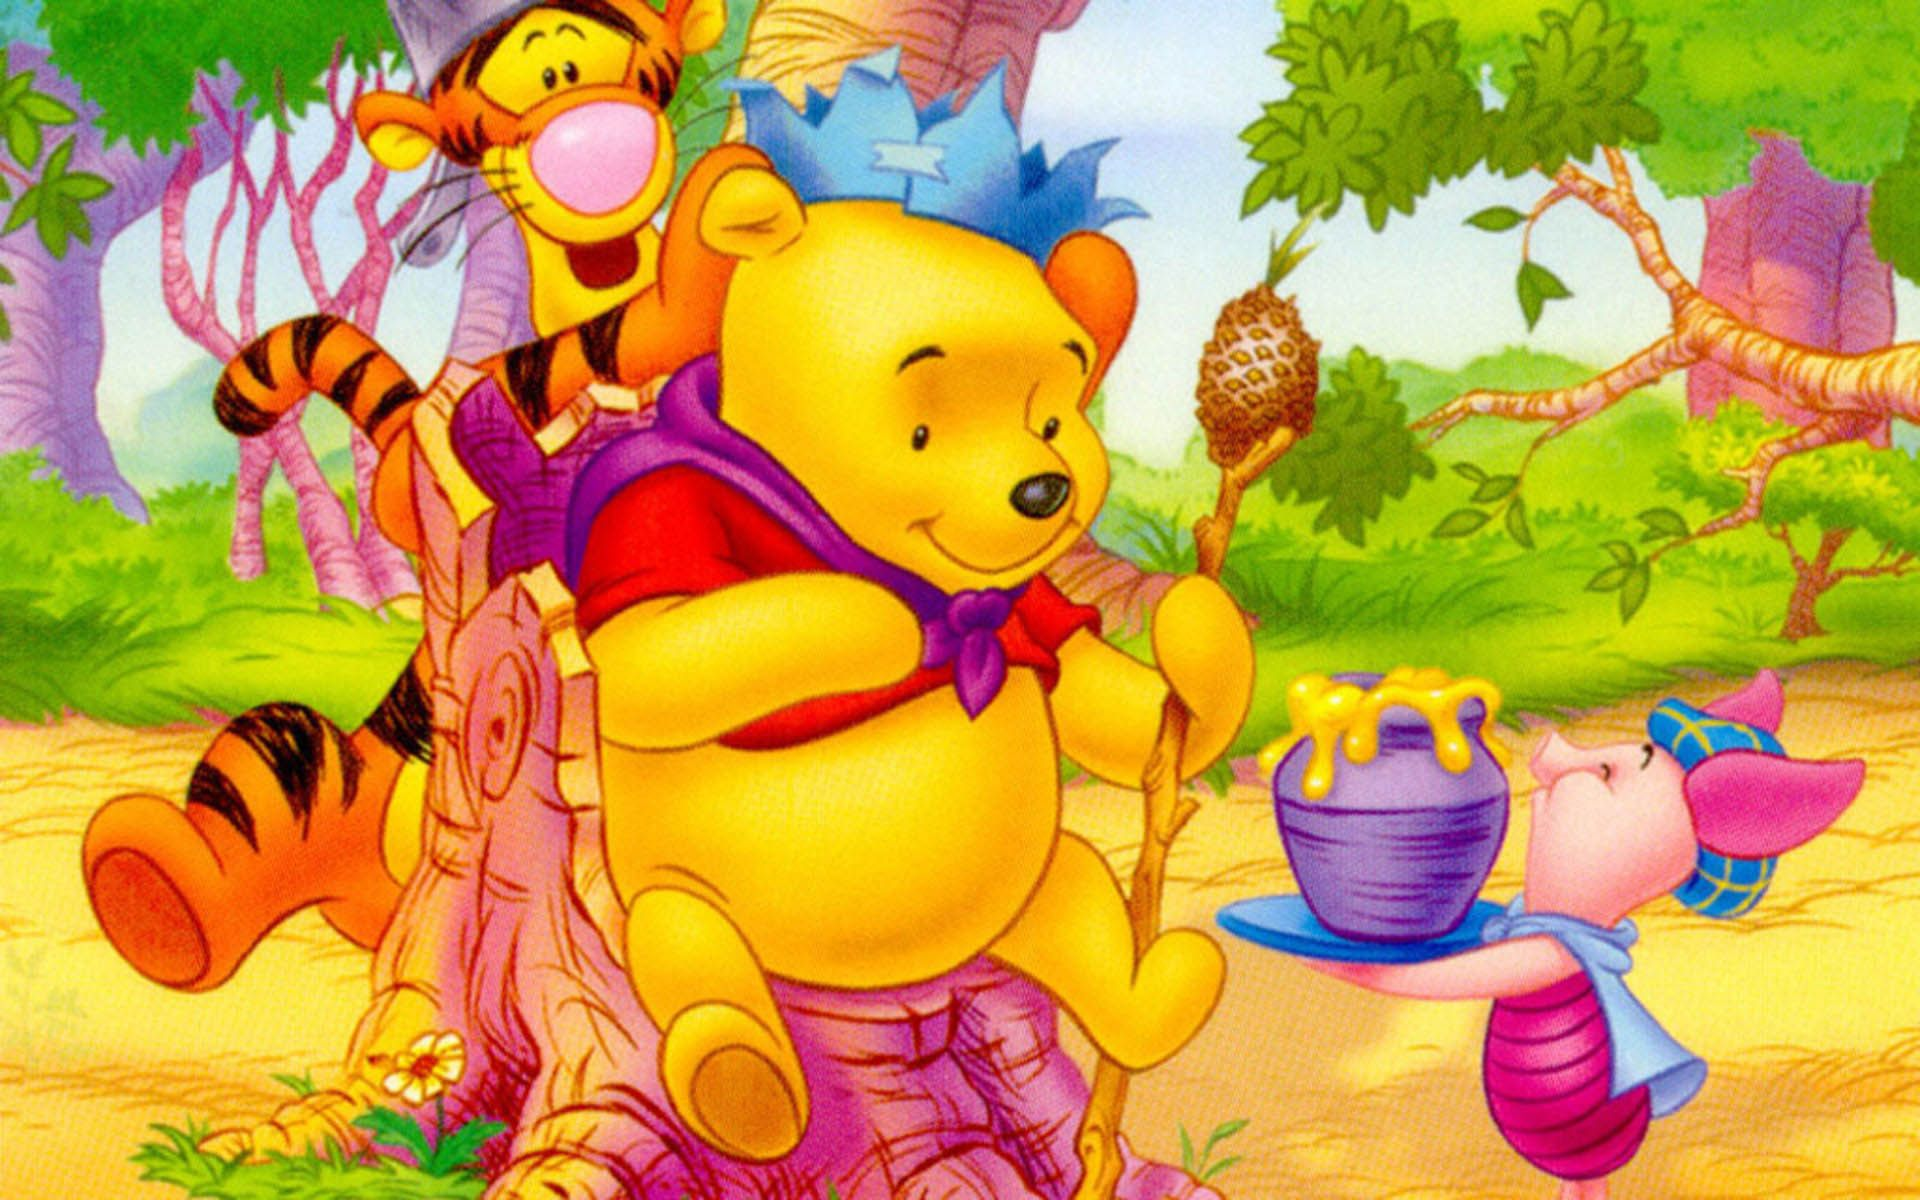 Bon Winnie The Pooh Beautiful HD Wallpapers.. Winnie The Pooh Wallpapers And  Backgrounds And Download Them On All Your Devices, Computer, Smartphone,  Tablet.